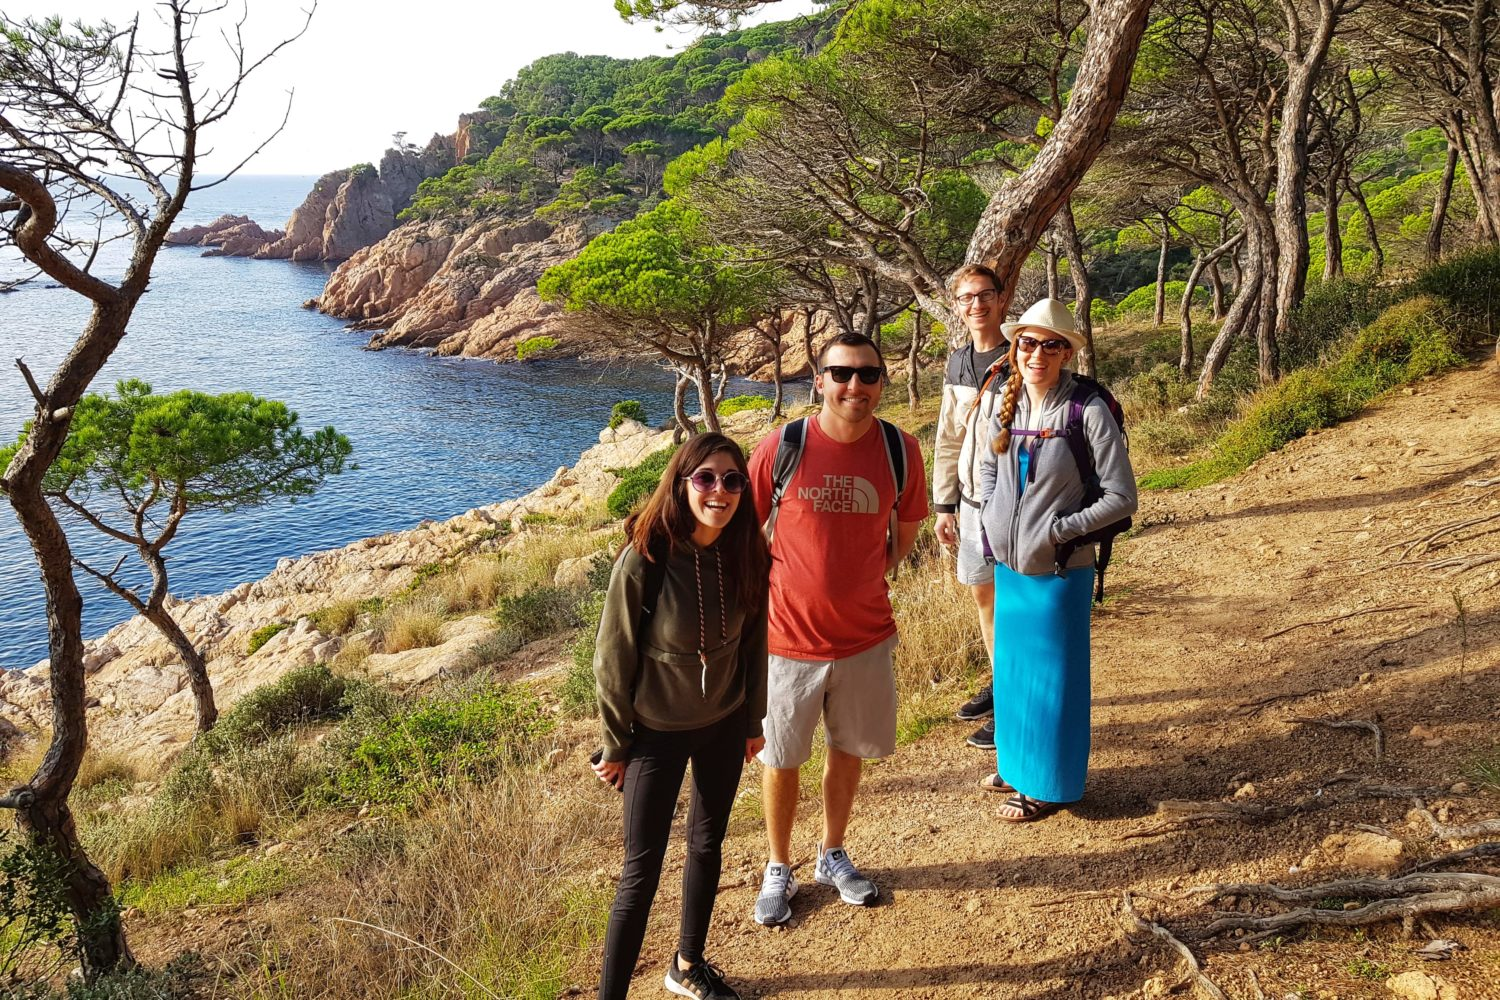 Amazing coastal views from Camino de Ronda. The best active holiday tours in the Costa Brava